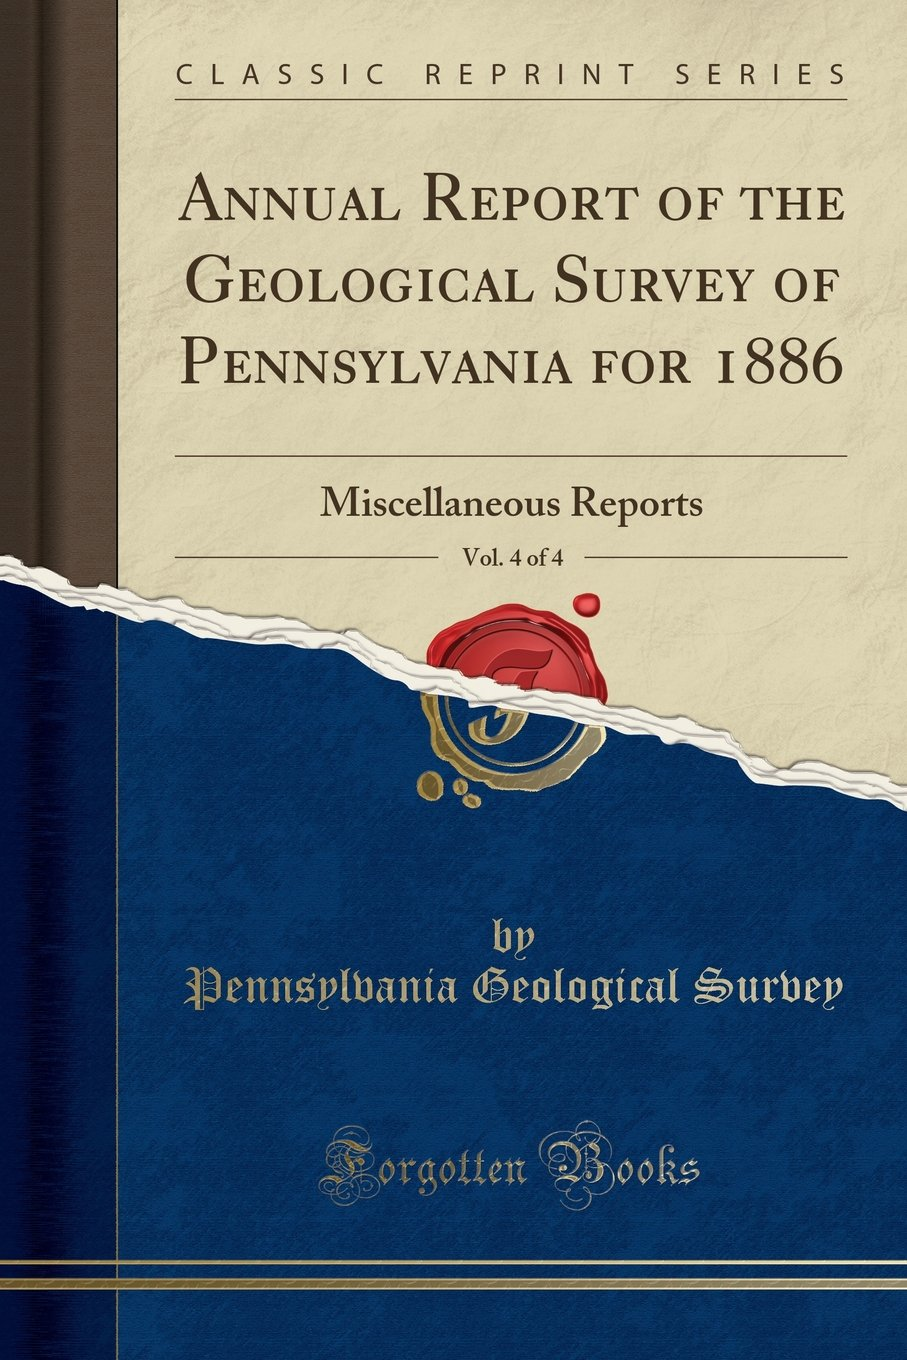 Download Annual Report of the Geological Survey of Pennsylvania for 1886, Vol. 4 of 4: Miscellaneous Reports (Classic Reprint) PDF